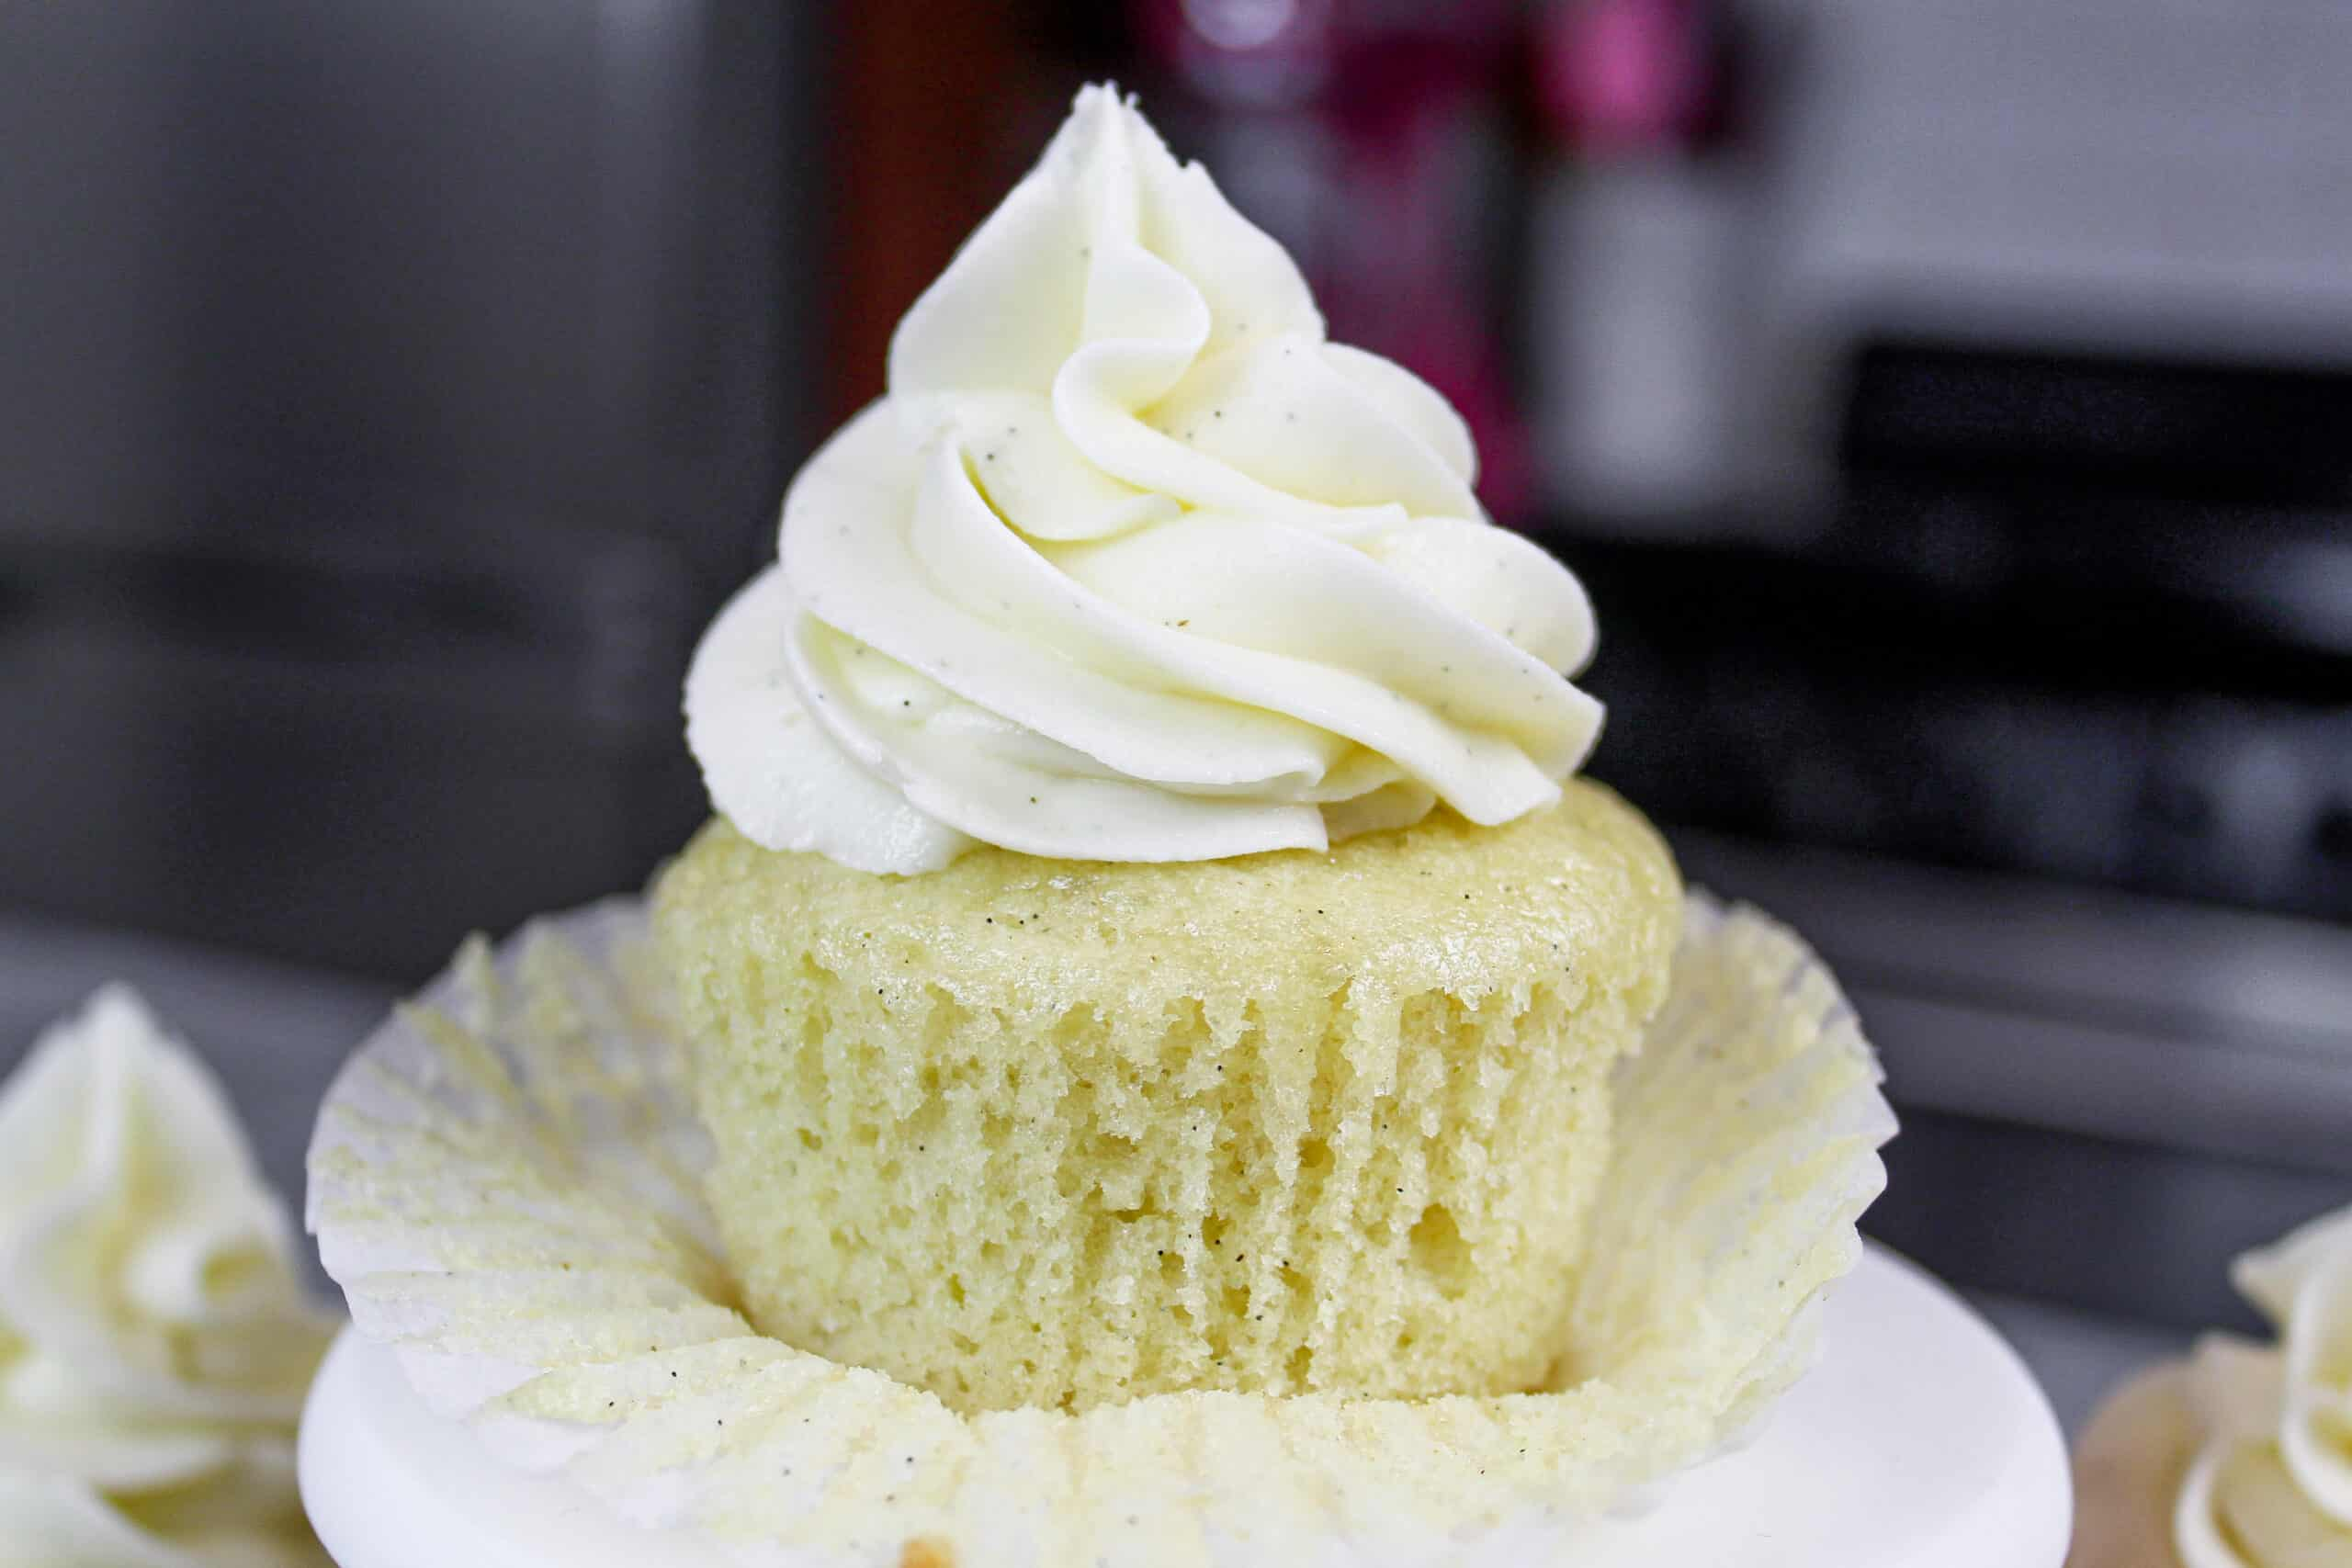 image of a gluten free cupcake, unwrapped to show how fluffy and moist it is